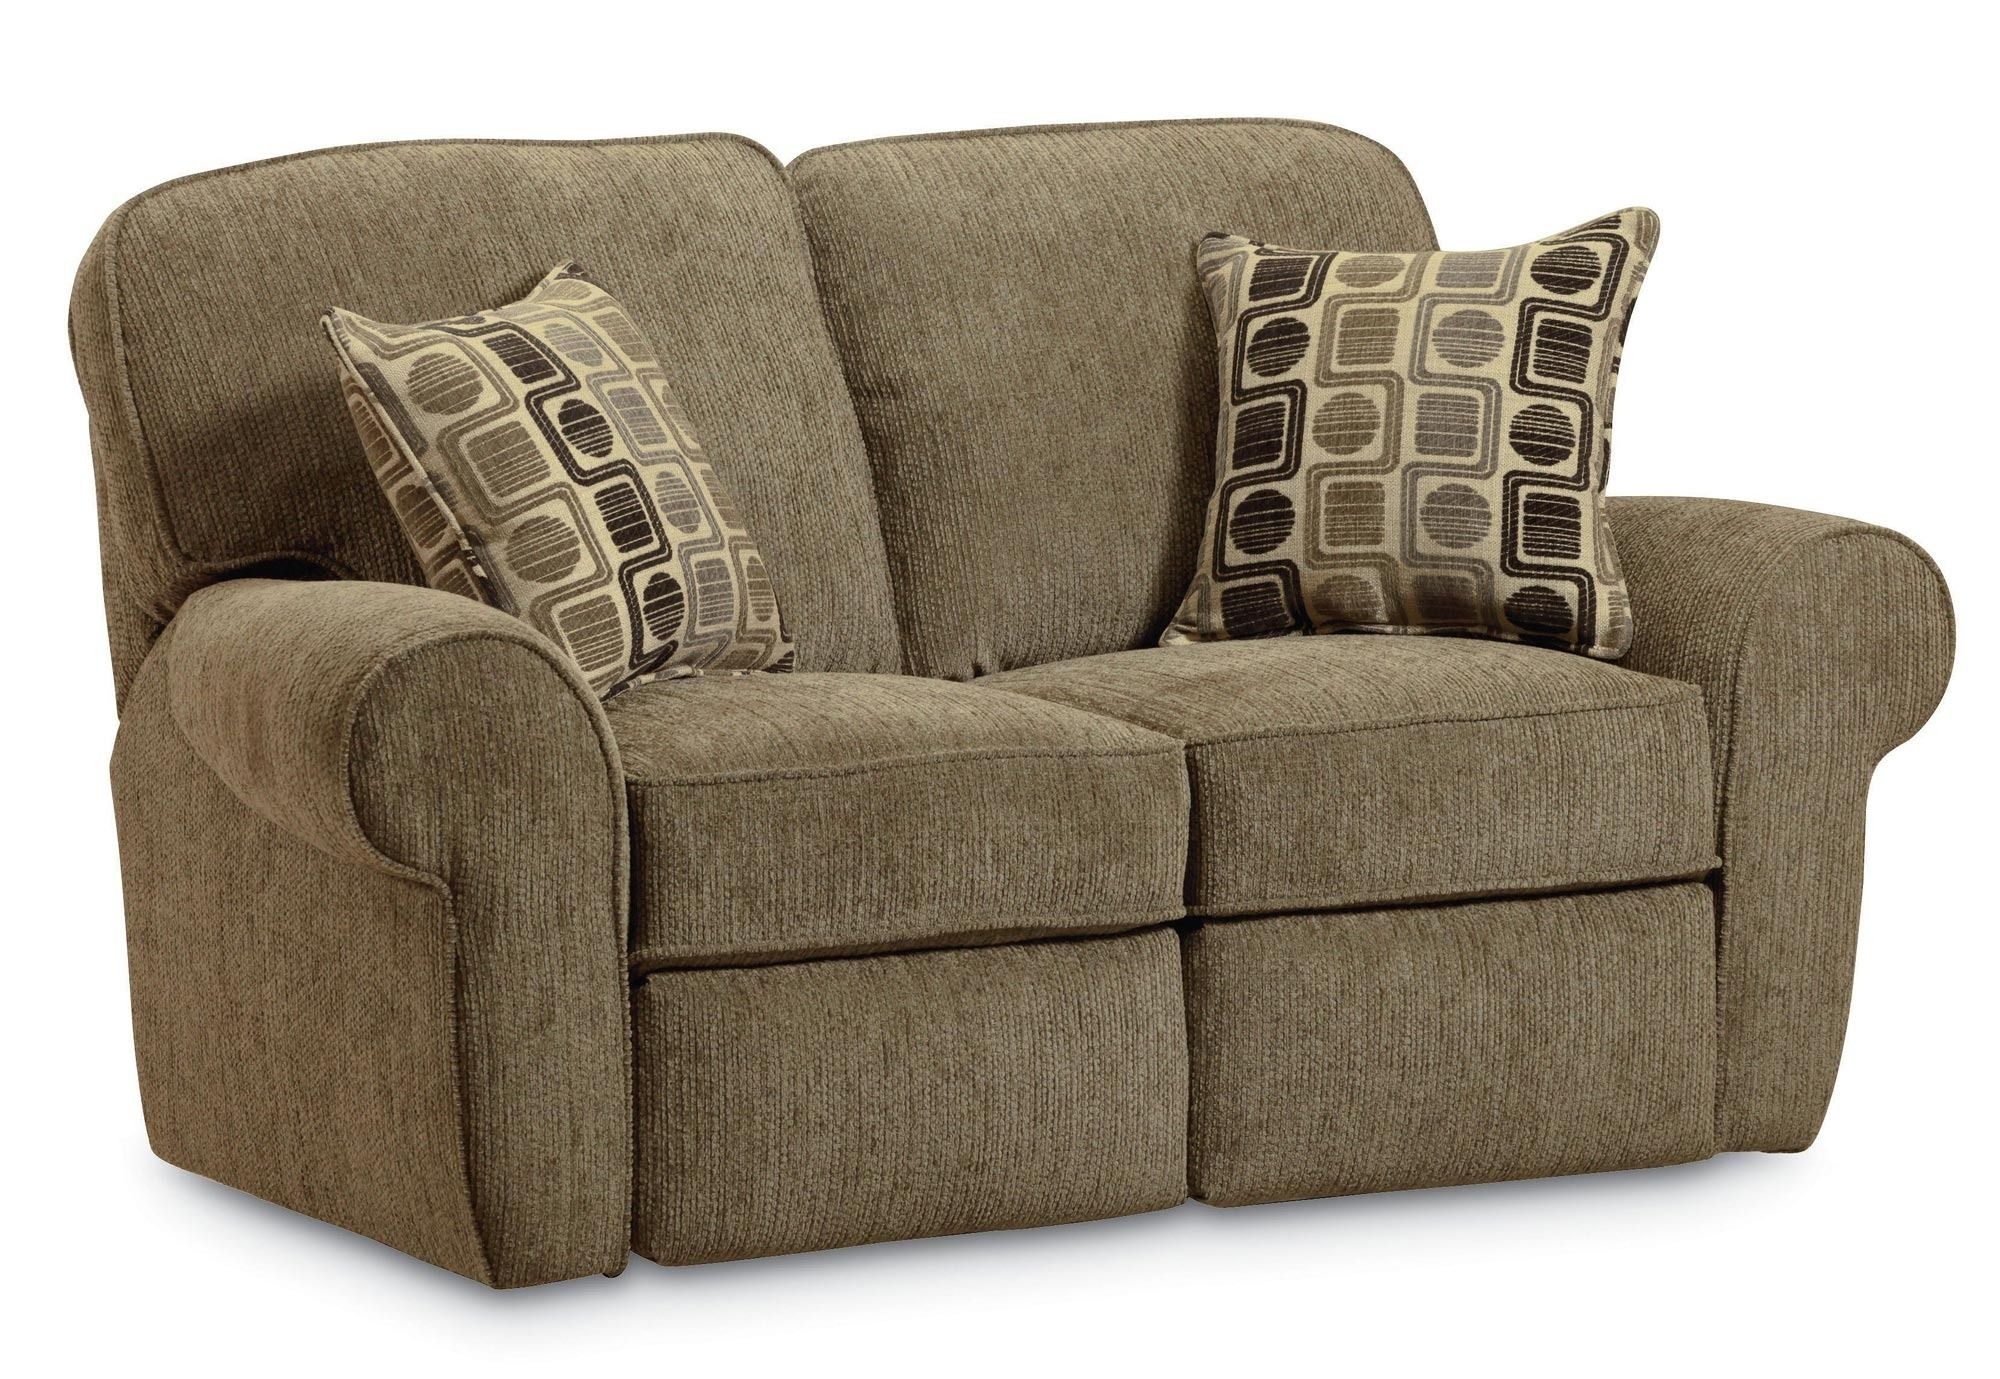 Slipcover For Dual Reclining Loveseat